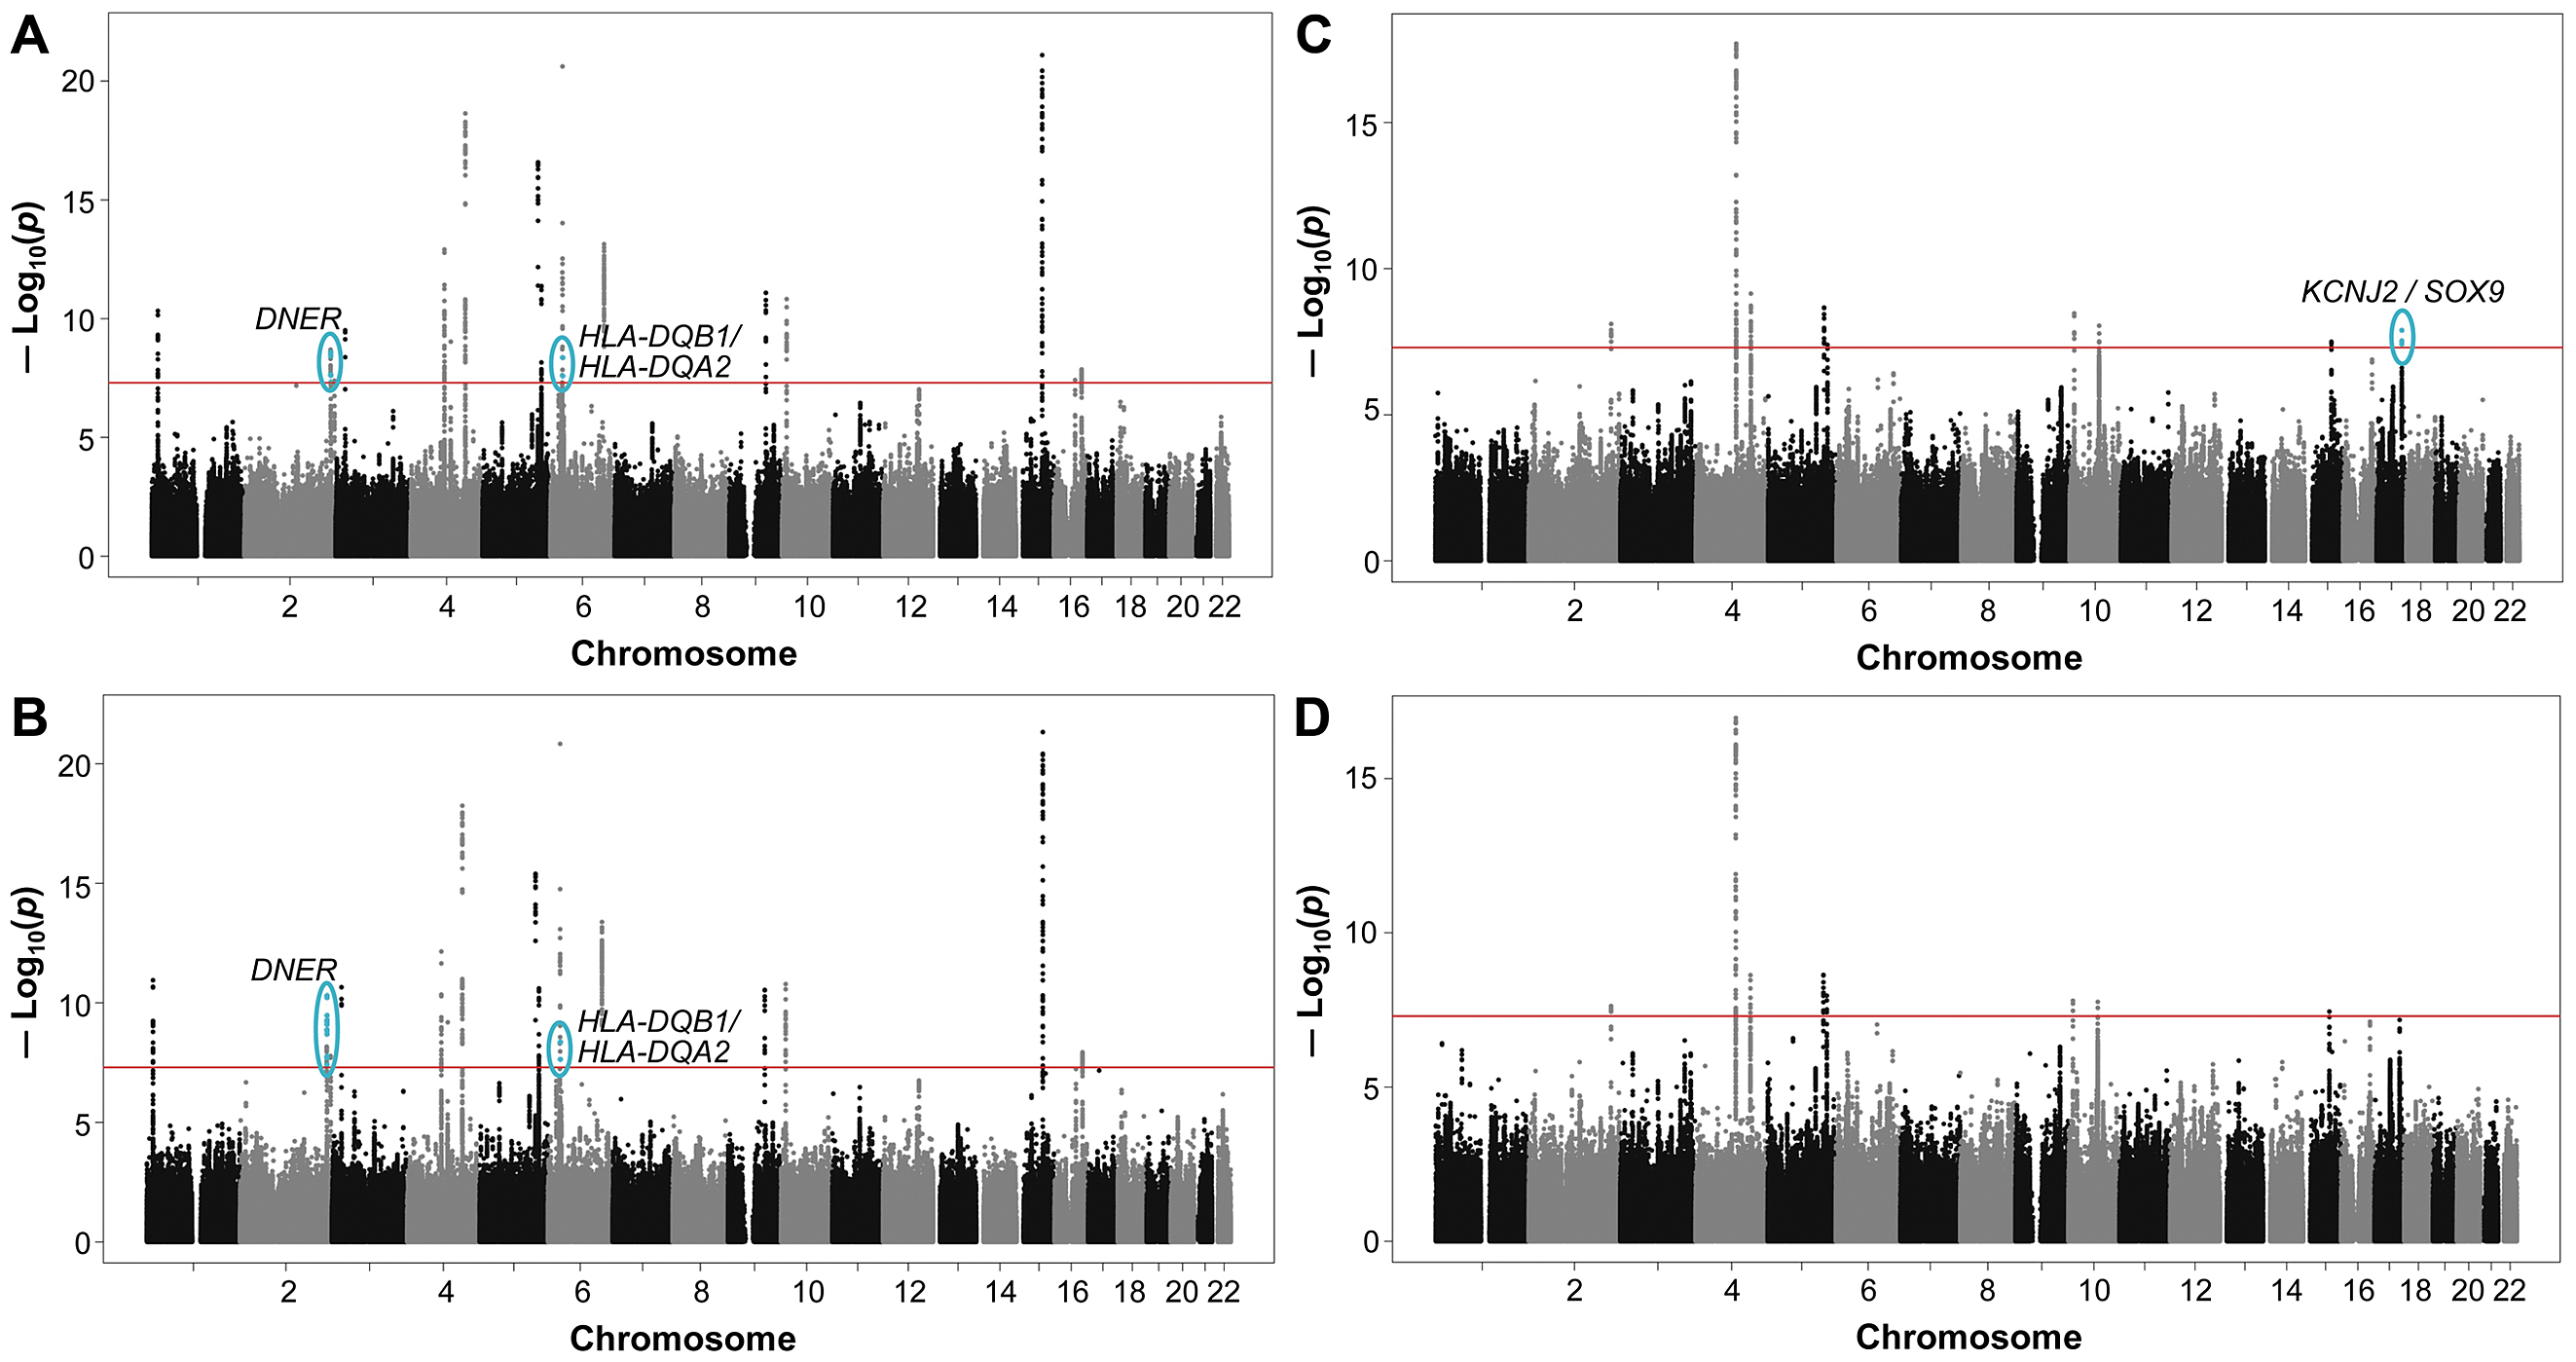 Genome-wide joint meta-analysis (JMA) of SNP and SNP-by-smoking interaction in relation to pulmonary function.